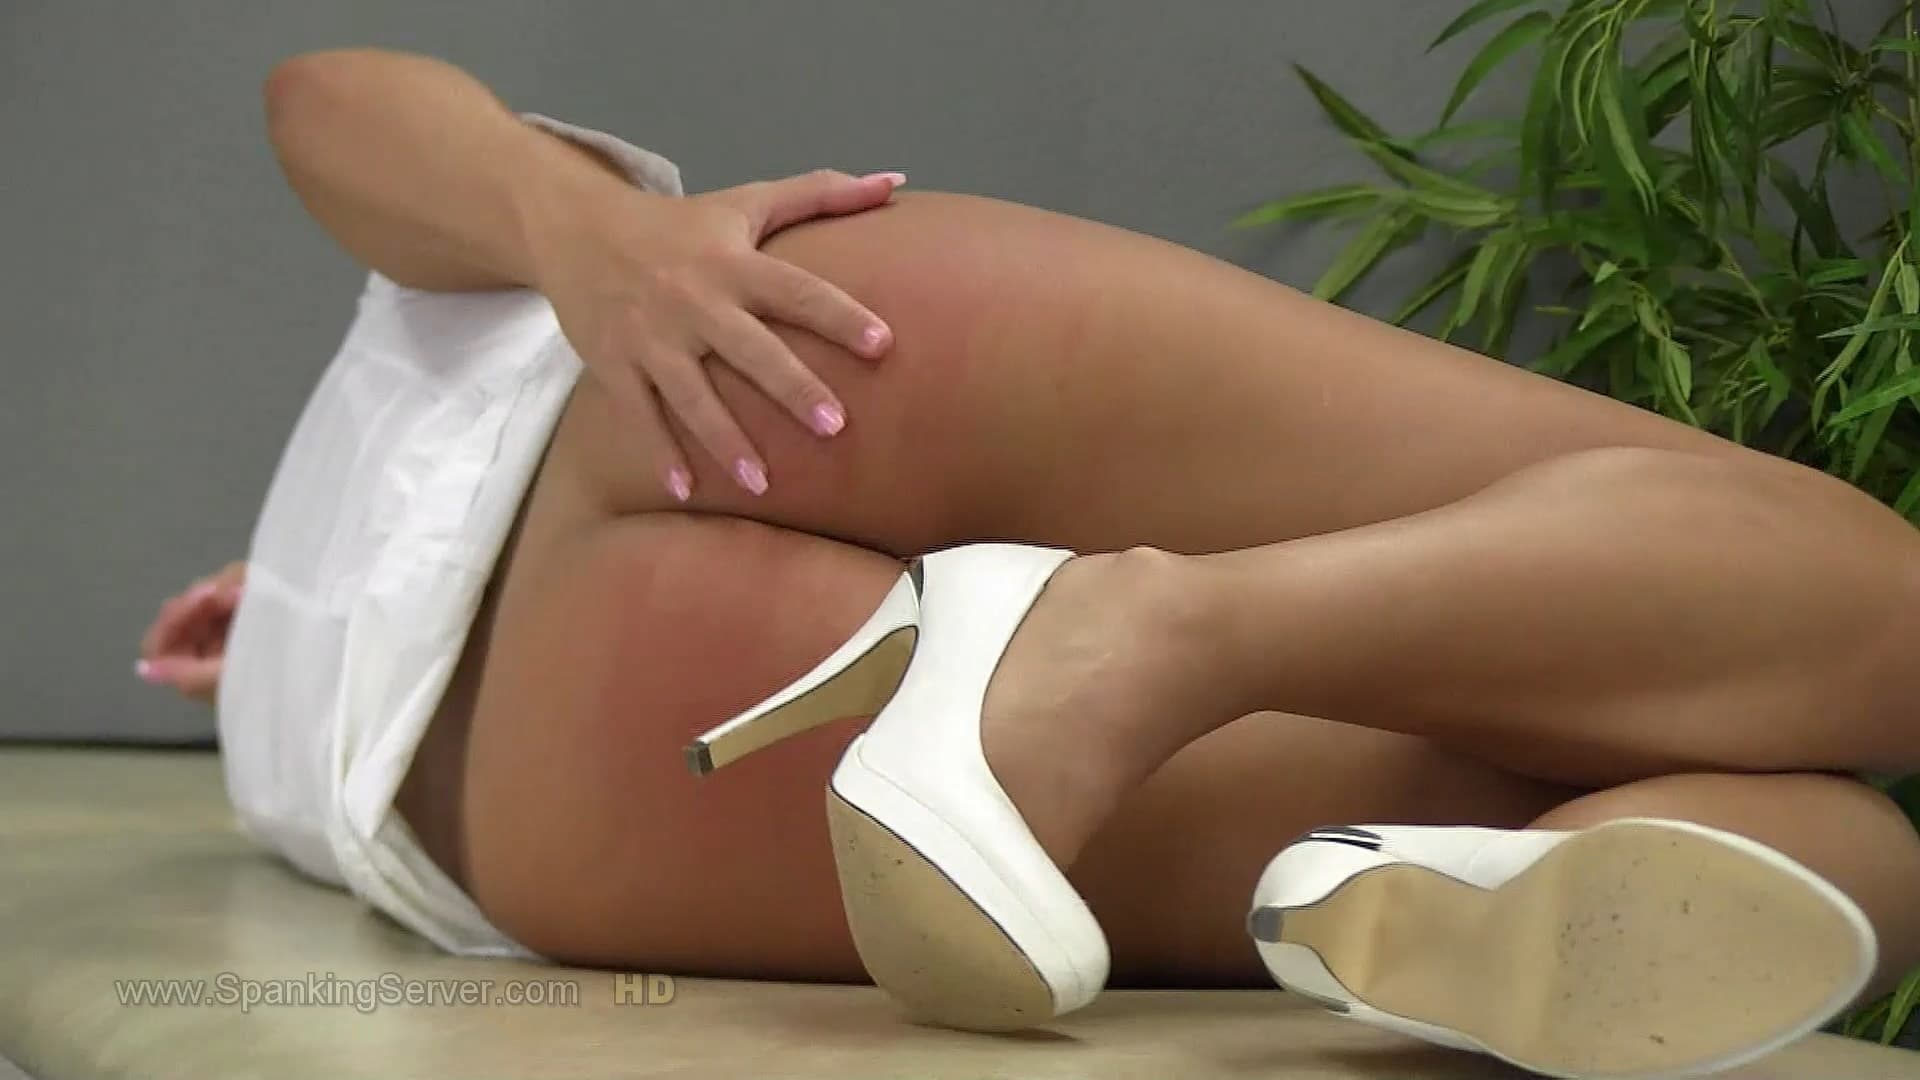 Victoria 2021 10 Week.mp4 snapshot 03.19.000 1 - Spanking Server – MP4/Full HD – Victoria - 2021 - 10 Week